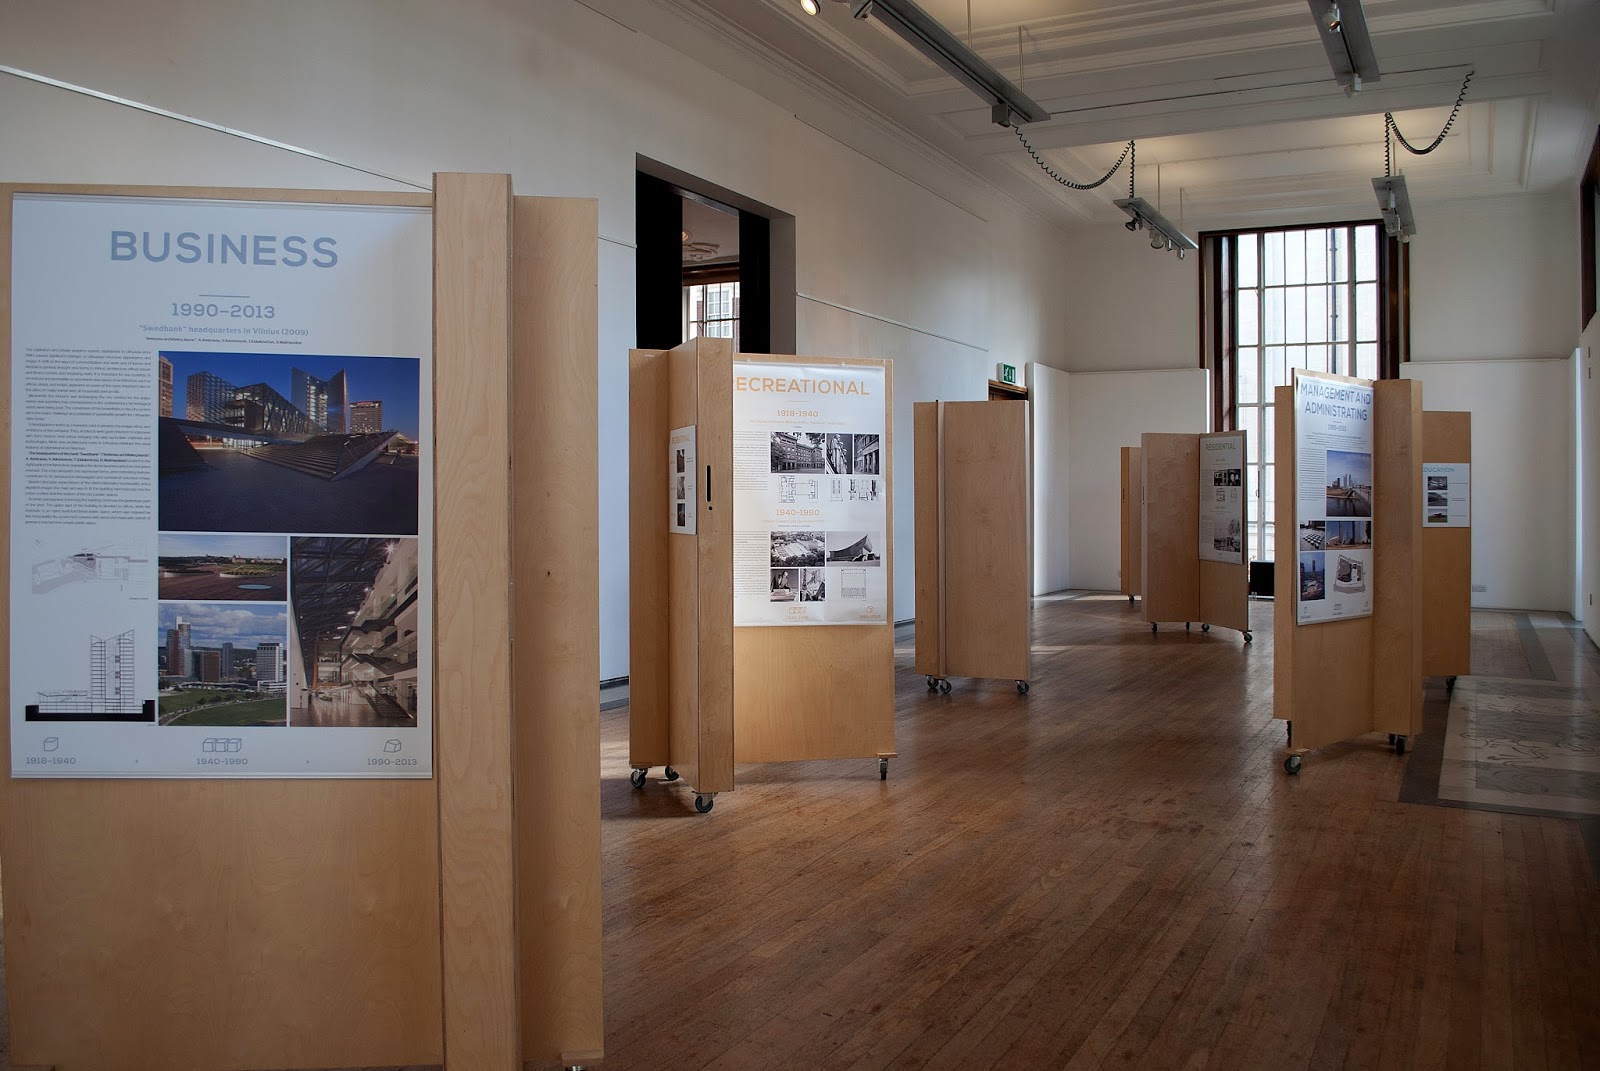 riba exhibition: lithuanian architecture